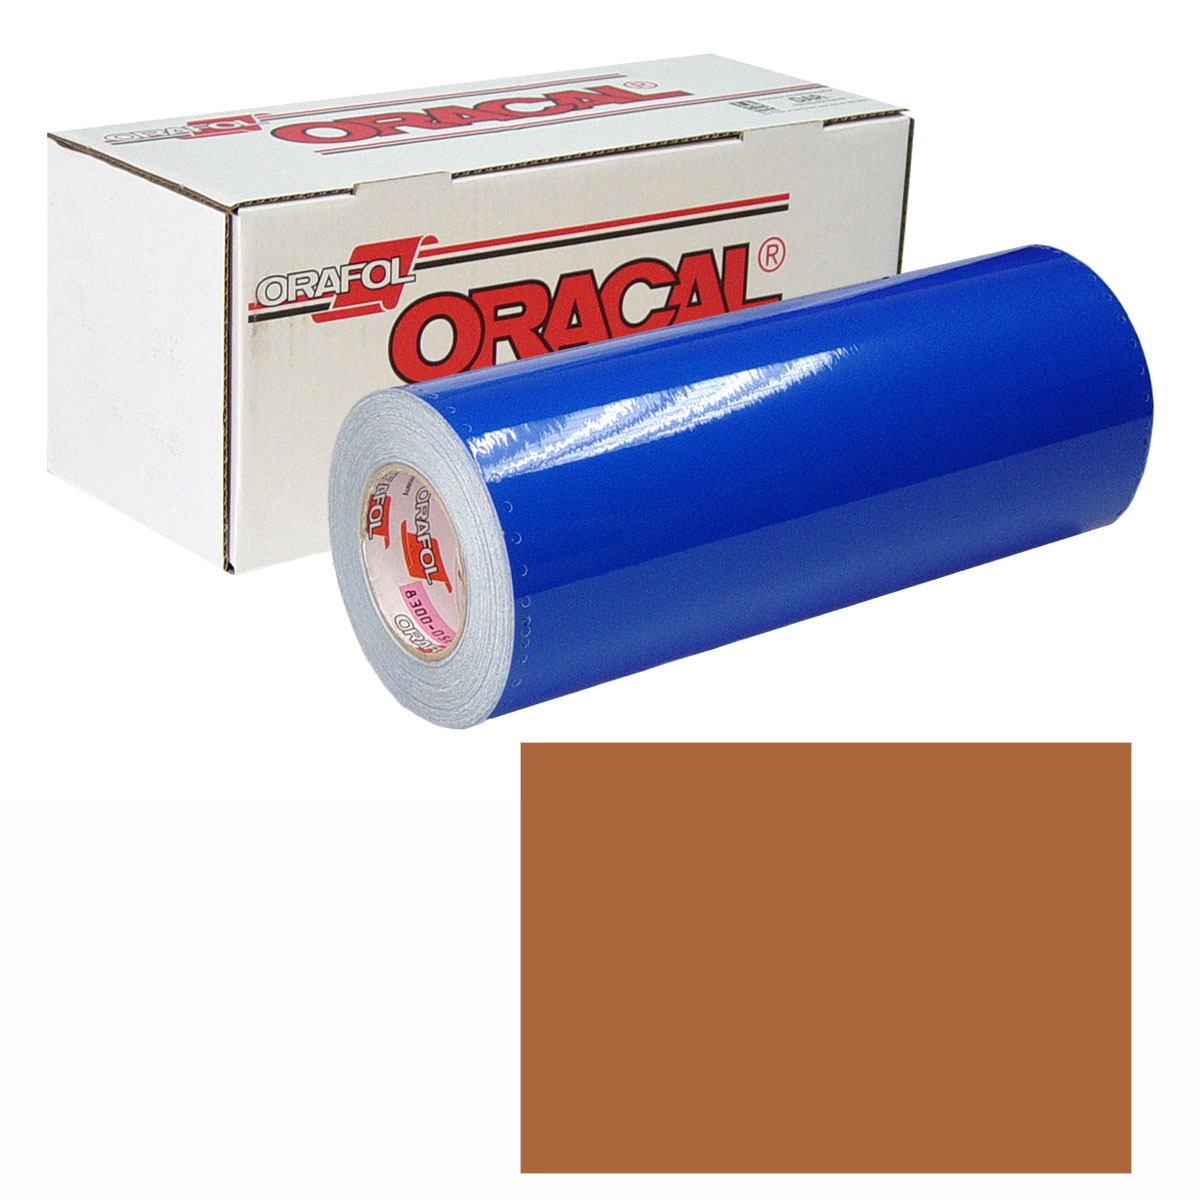 ORACAL 631 Unp 30in X 10yd 092 Copper Met